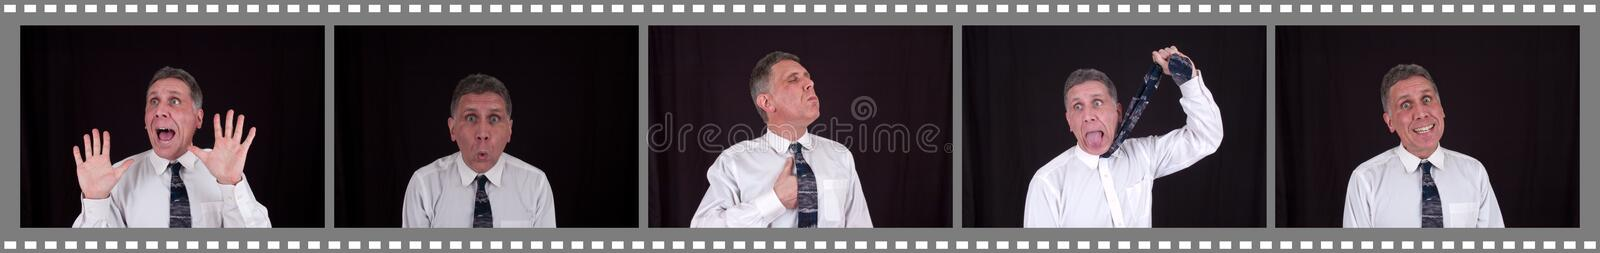 Funny Man in Shopping Mall Photo Booth royalty free stock photo